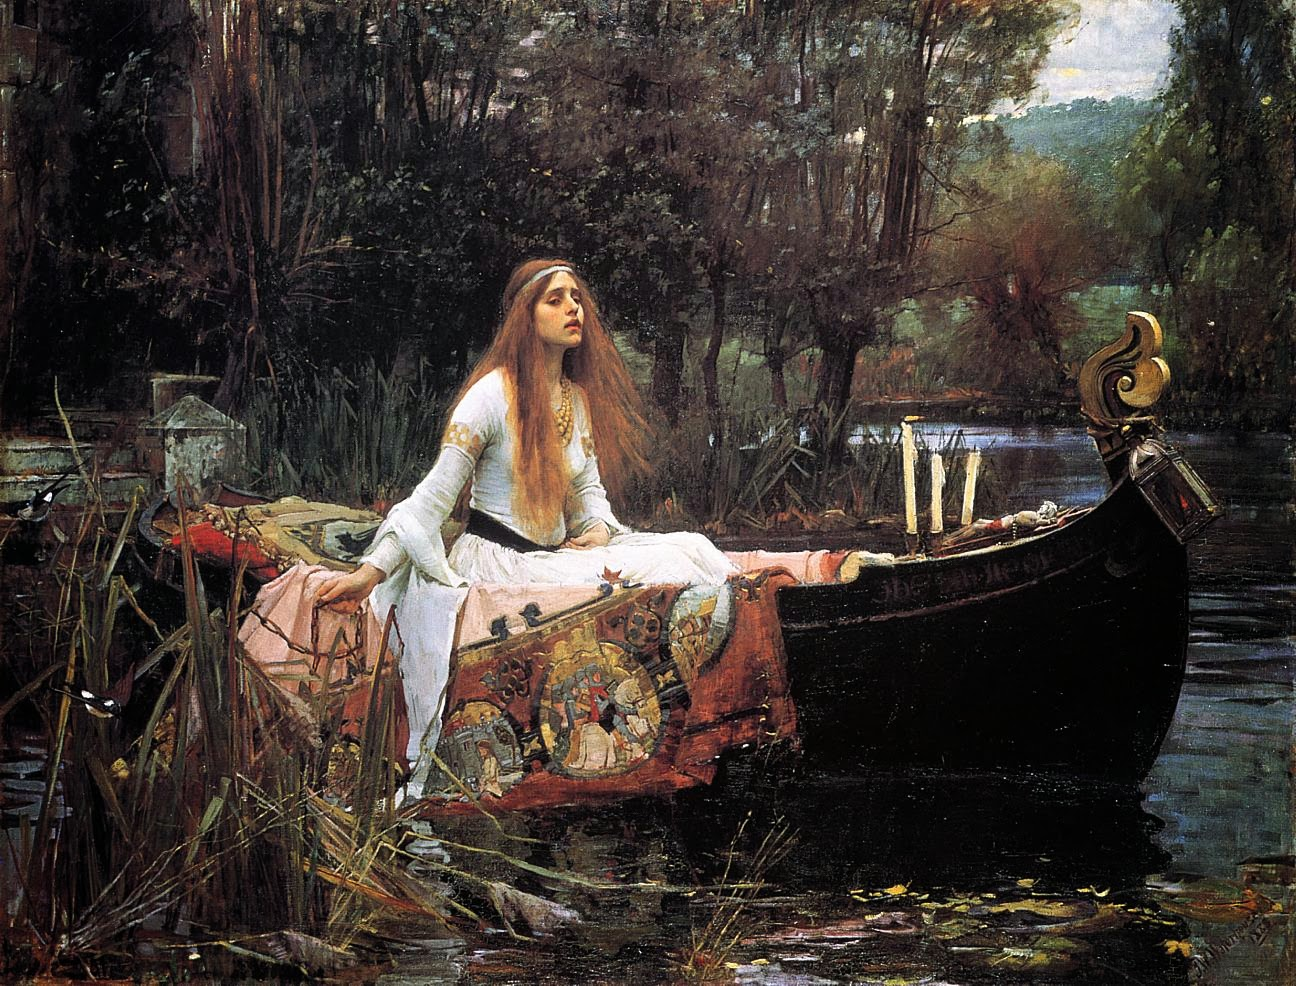 John William Waterhouse, The Lady of Shalott